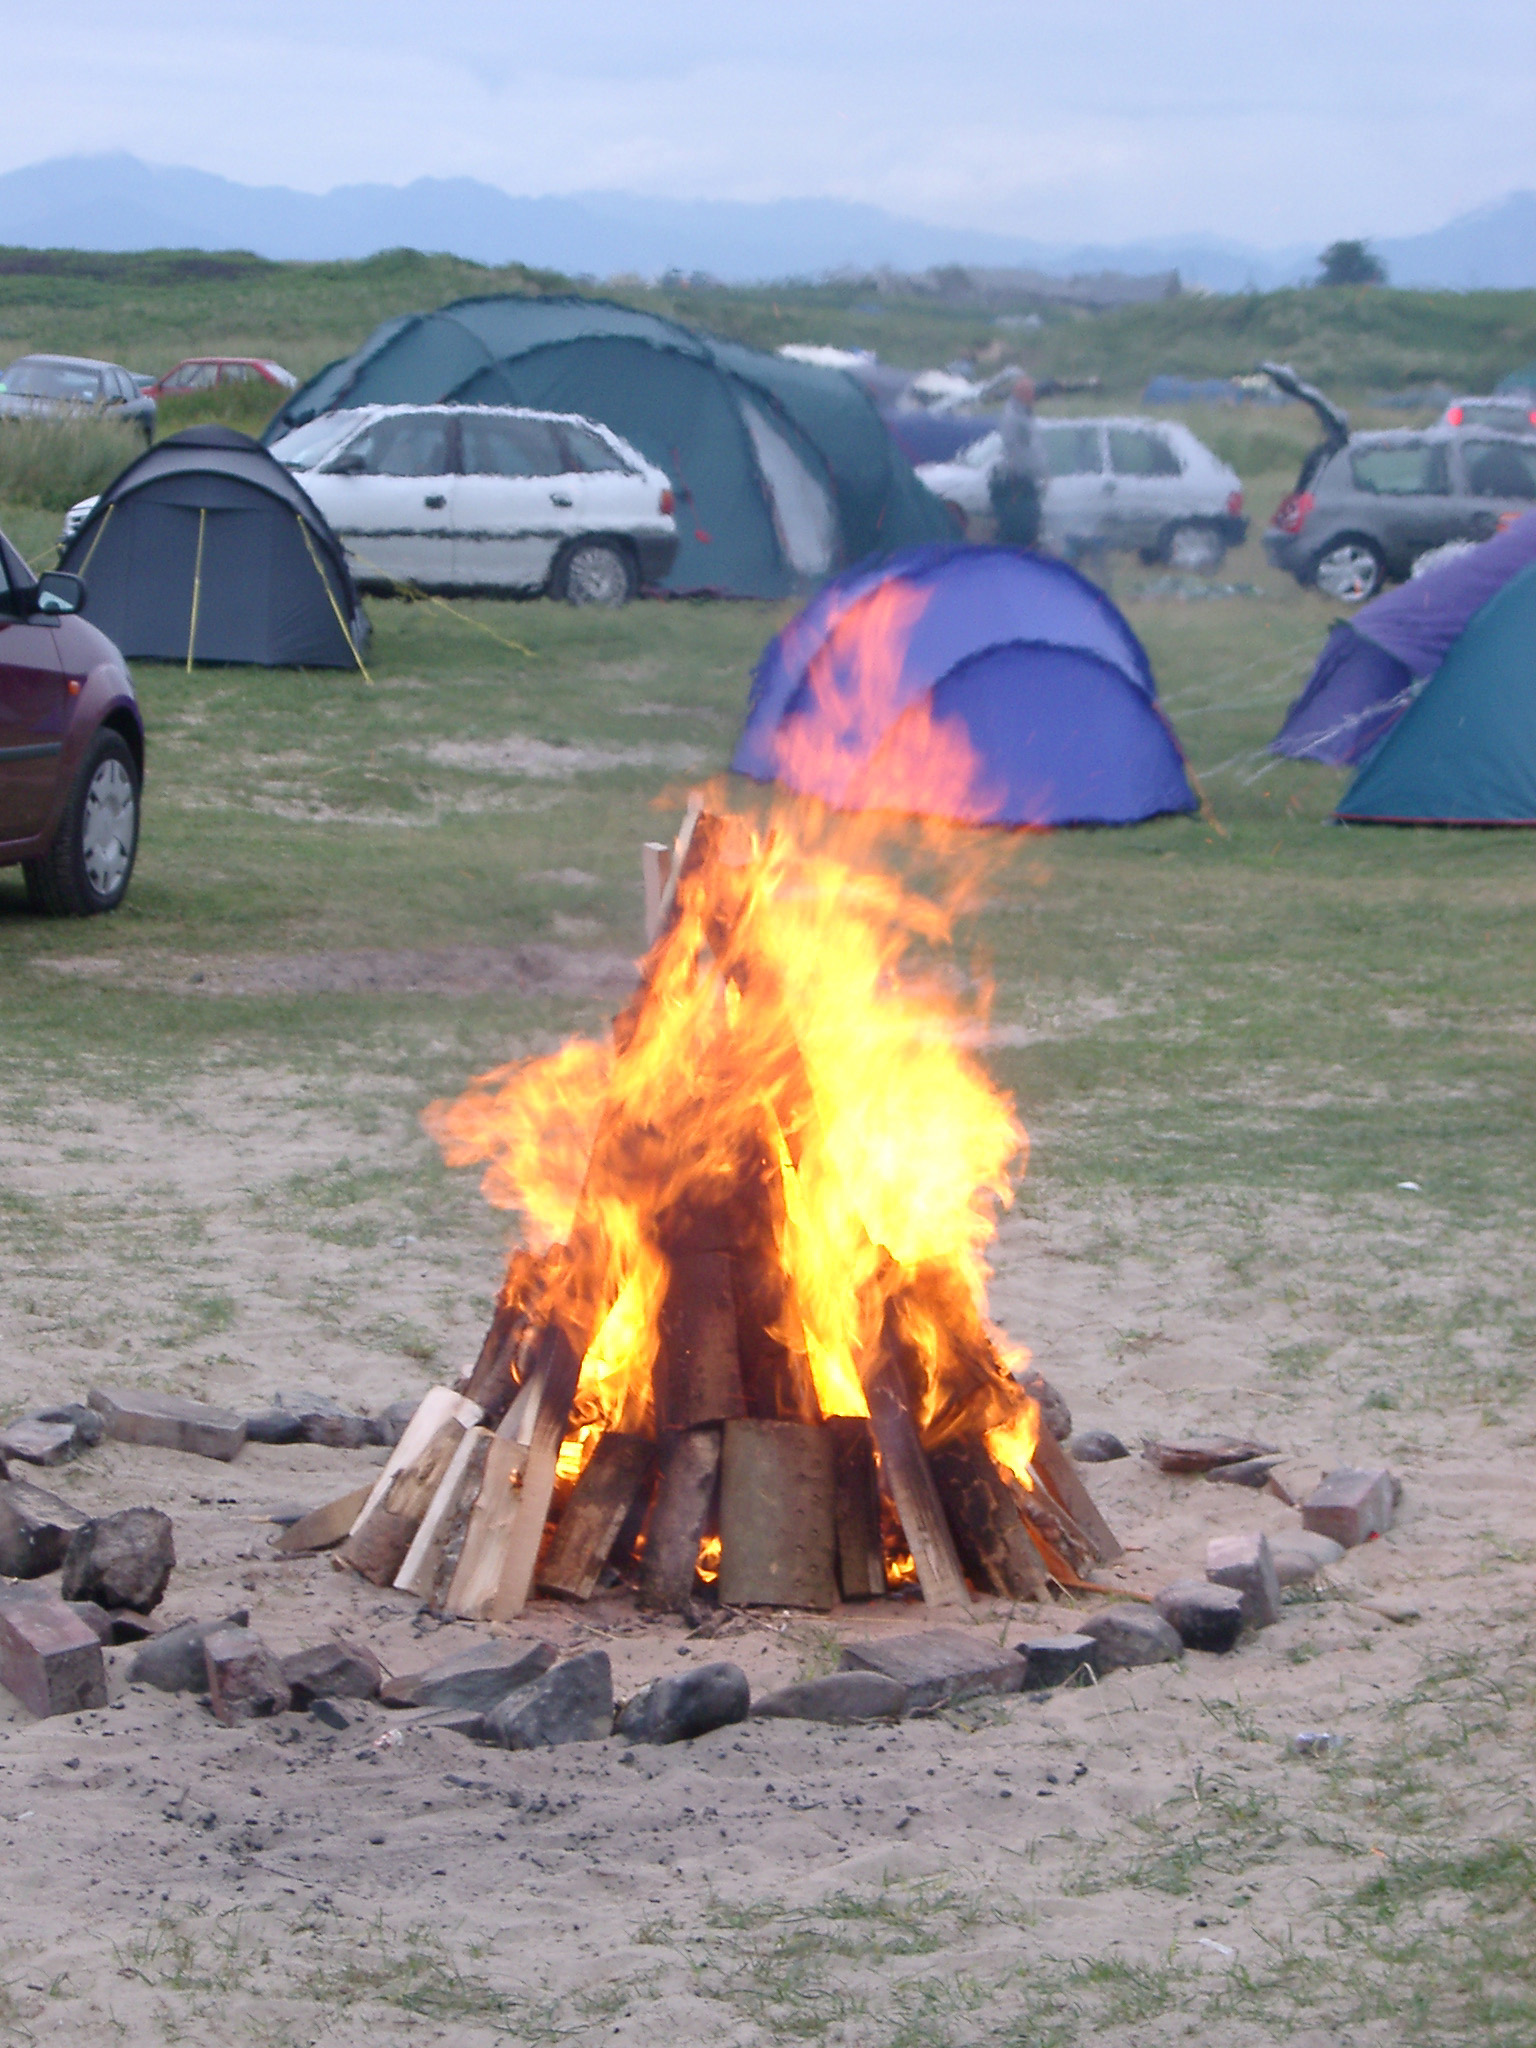 Campfire burning in a campsite amongst rows of small tents and parked cars